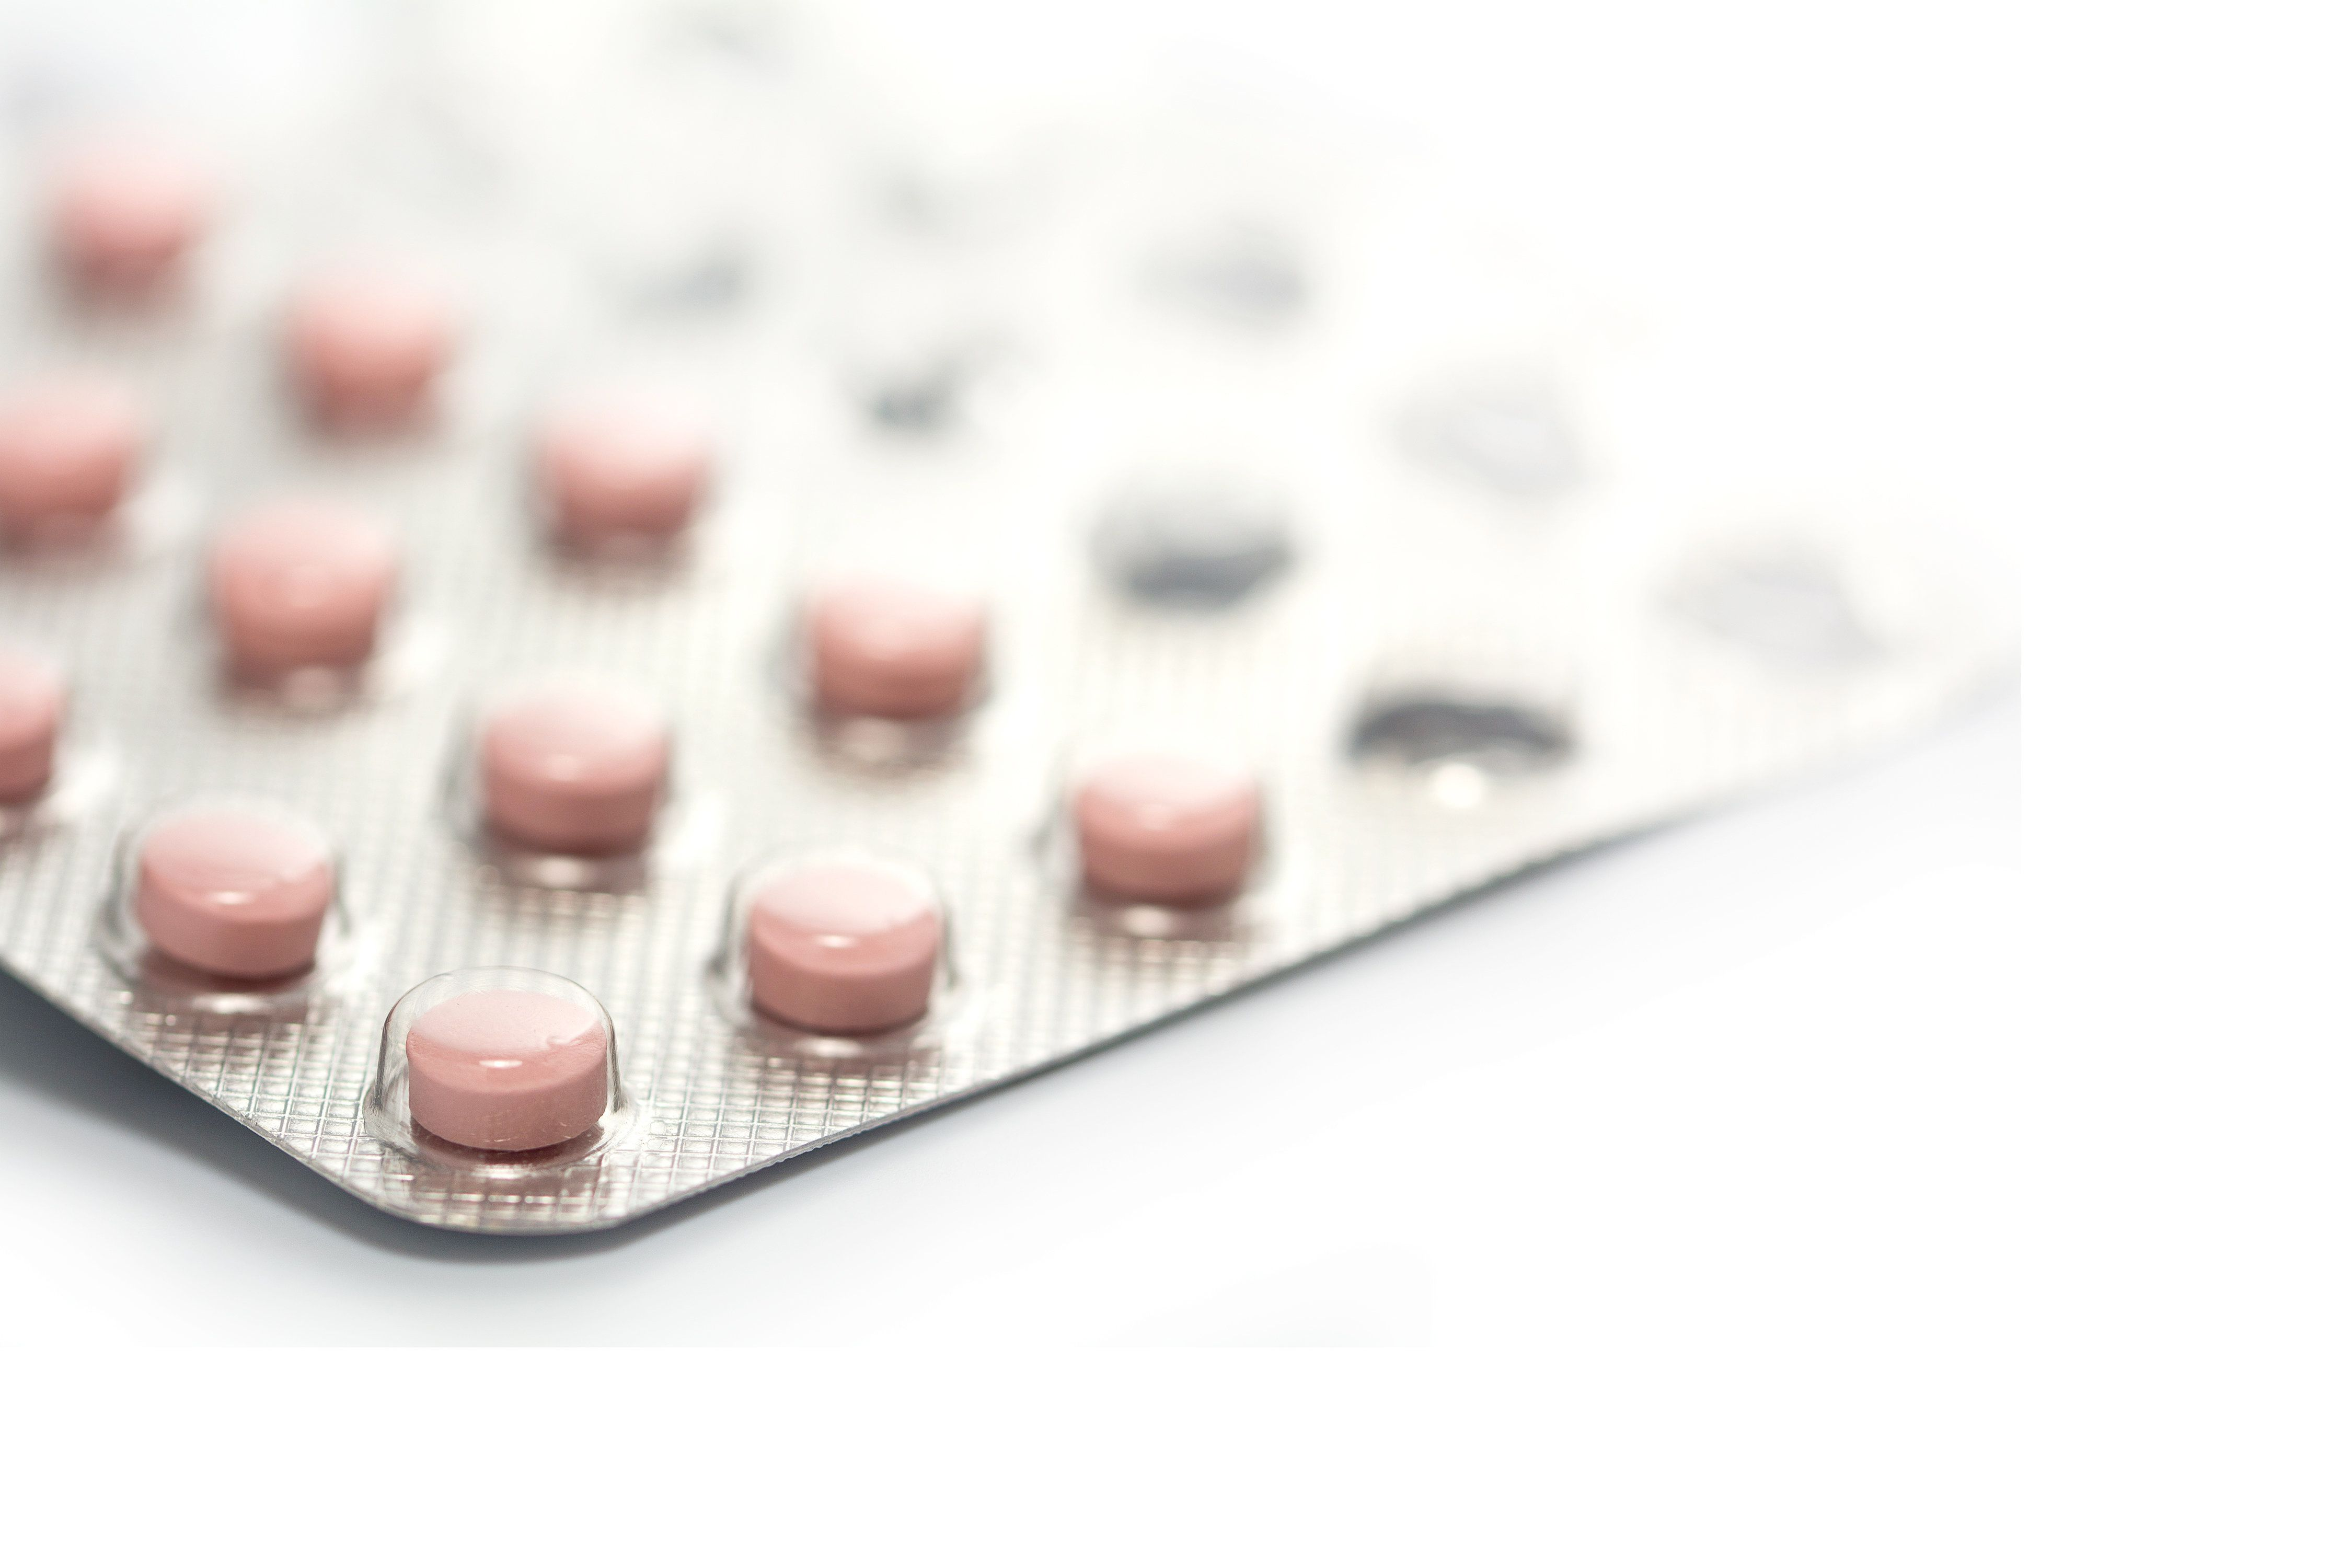 Use Of Statins May Speed Up The Onset Of Parkinson's